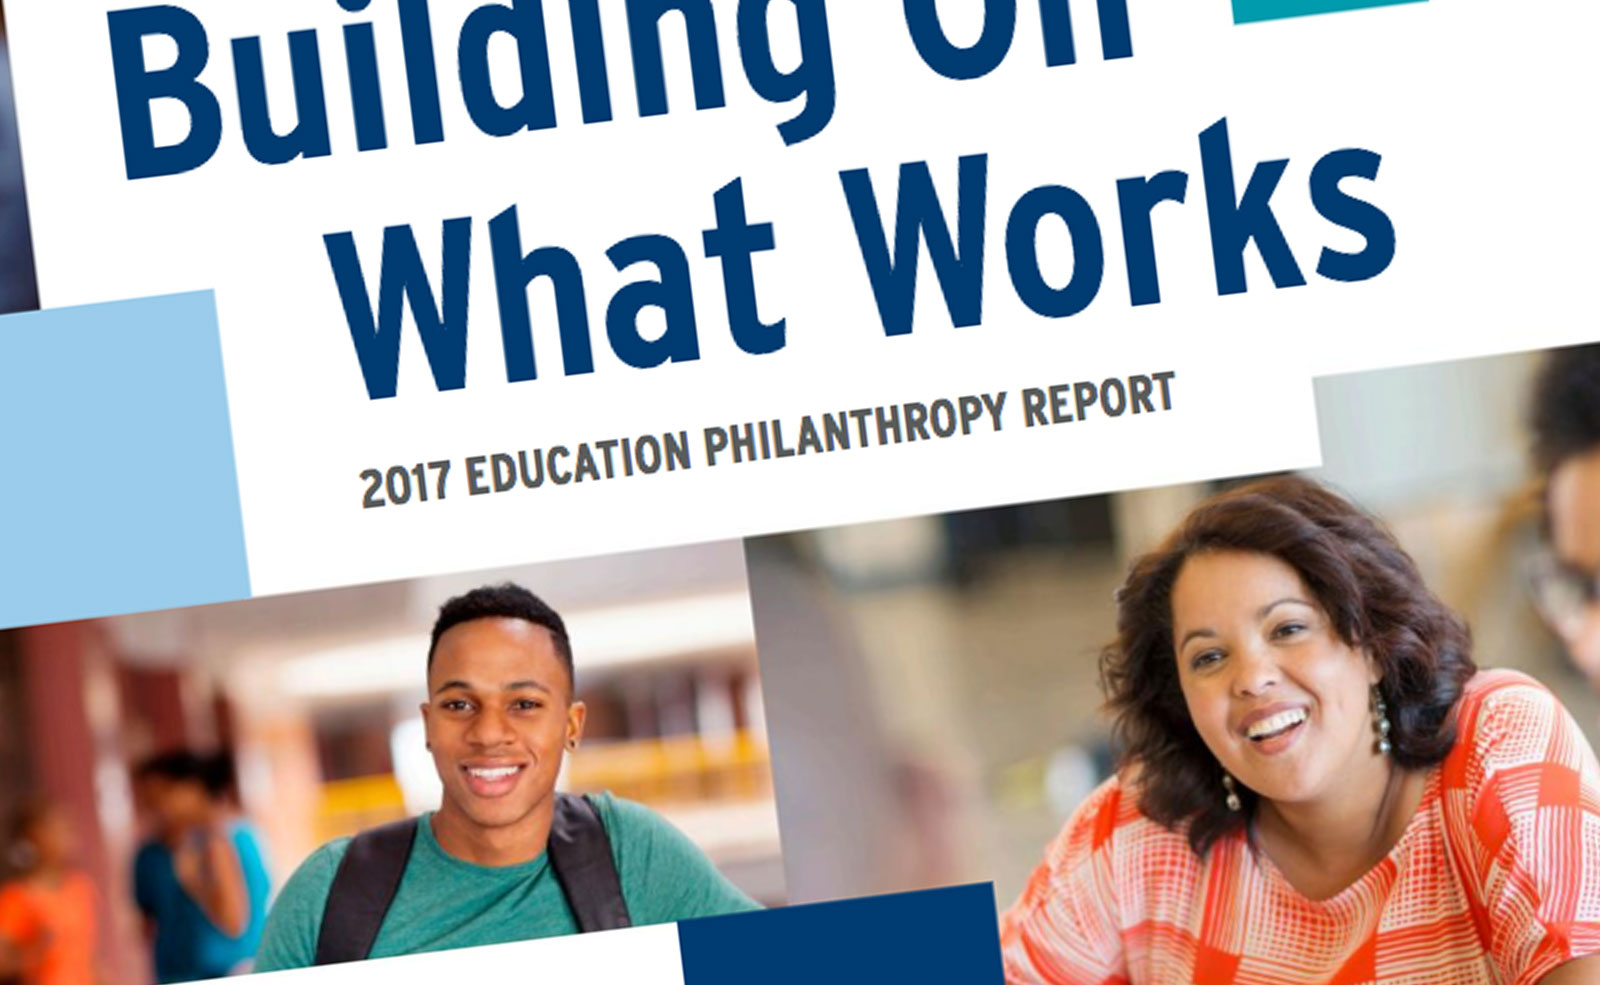 Building on What Works Report